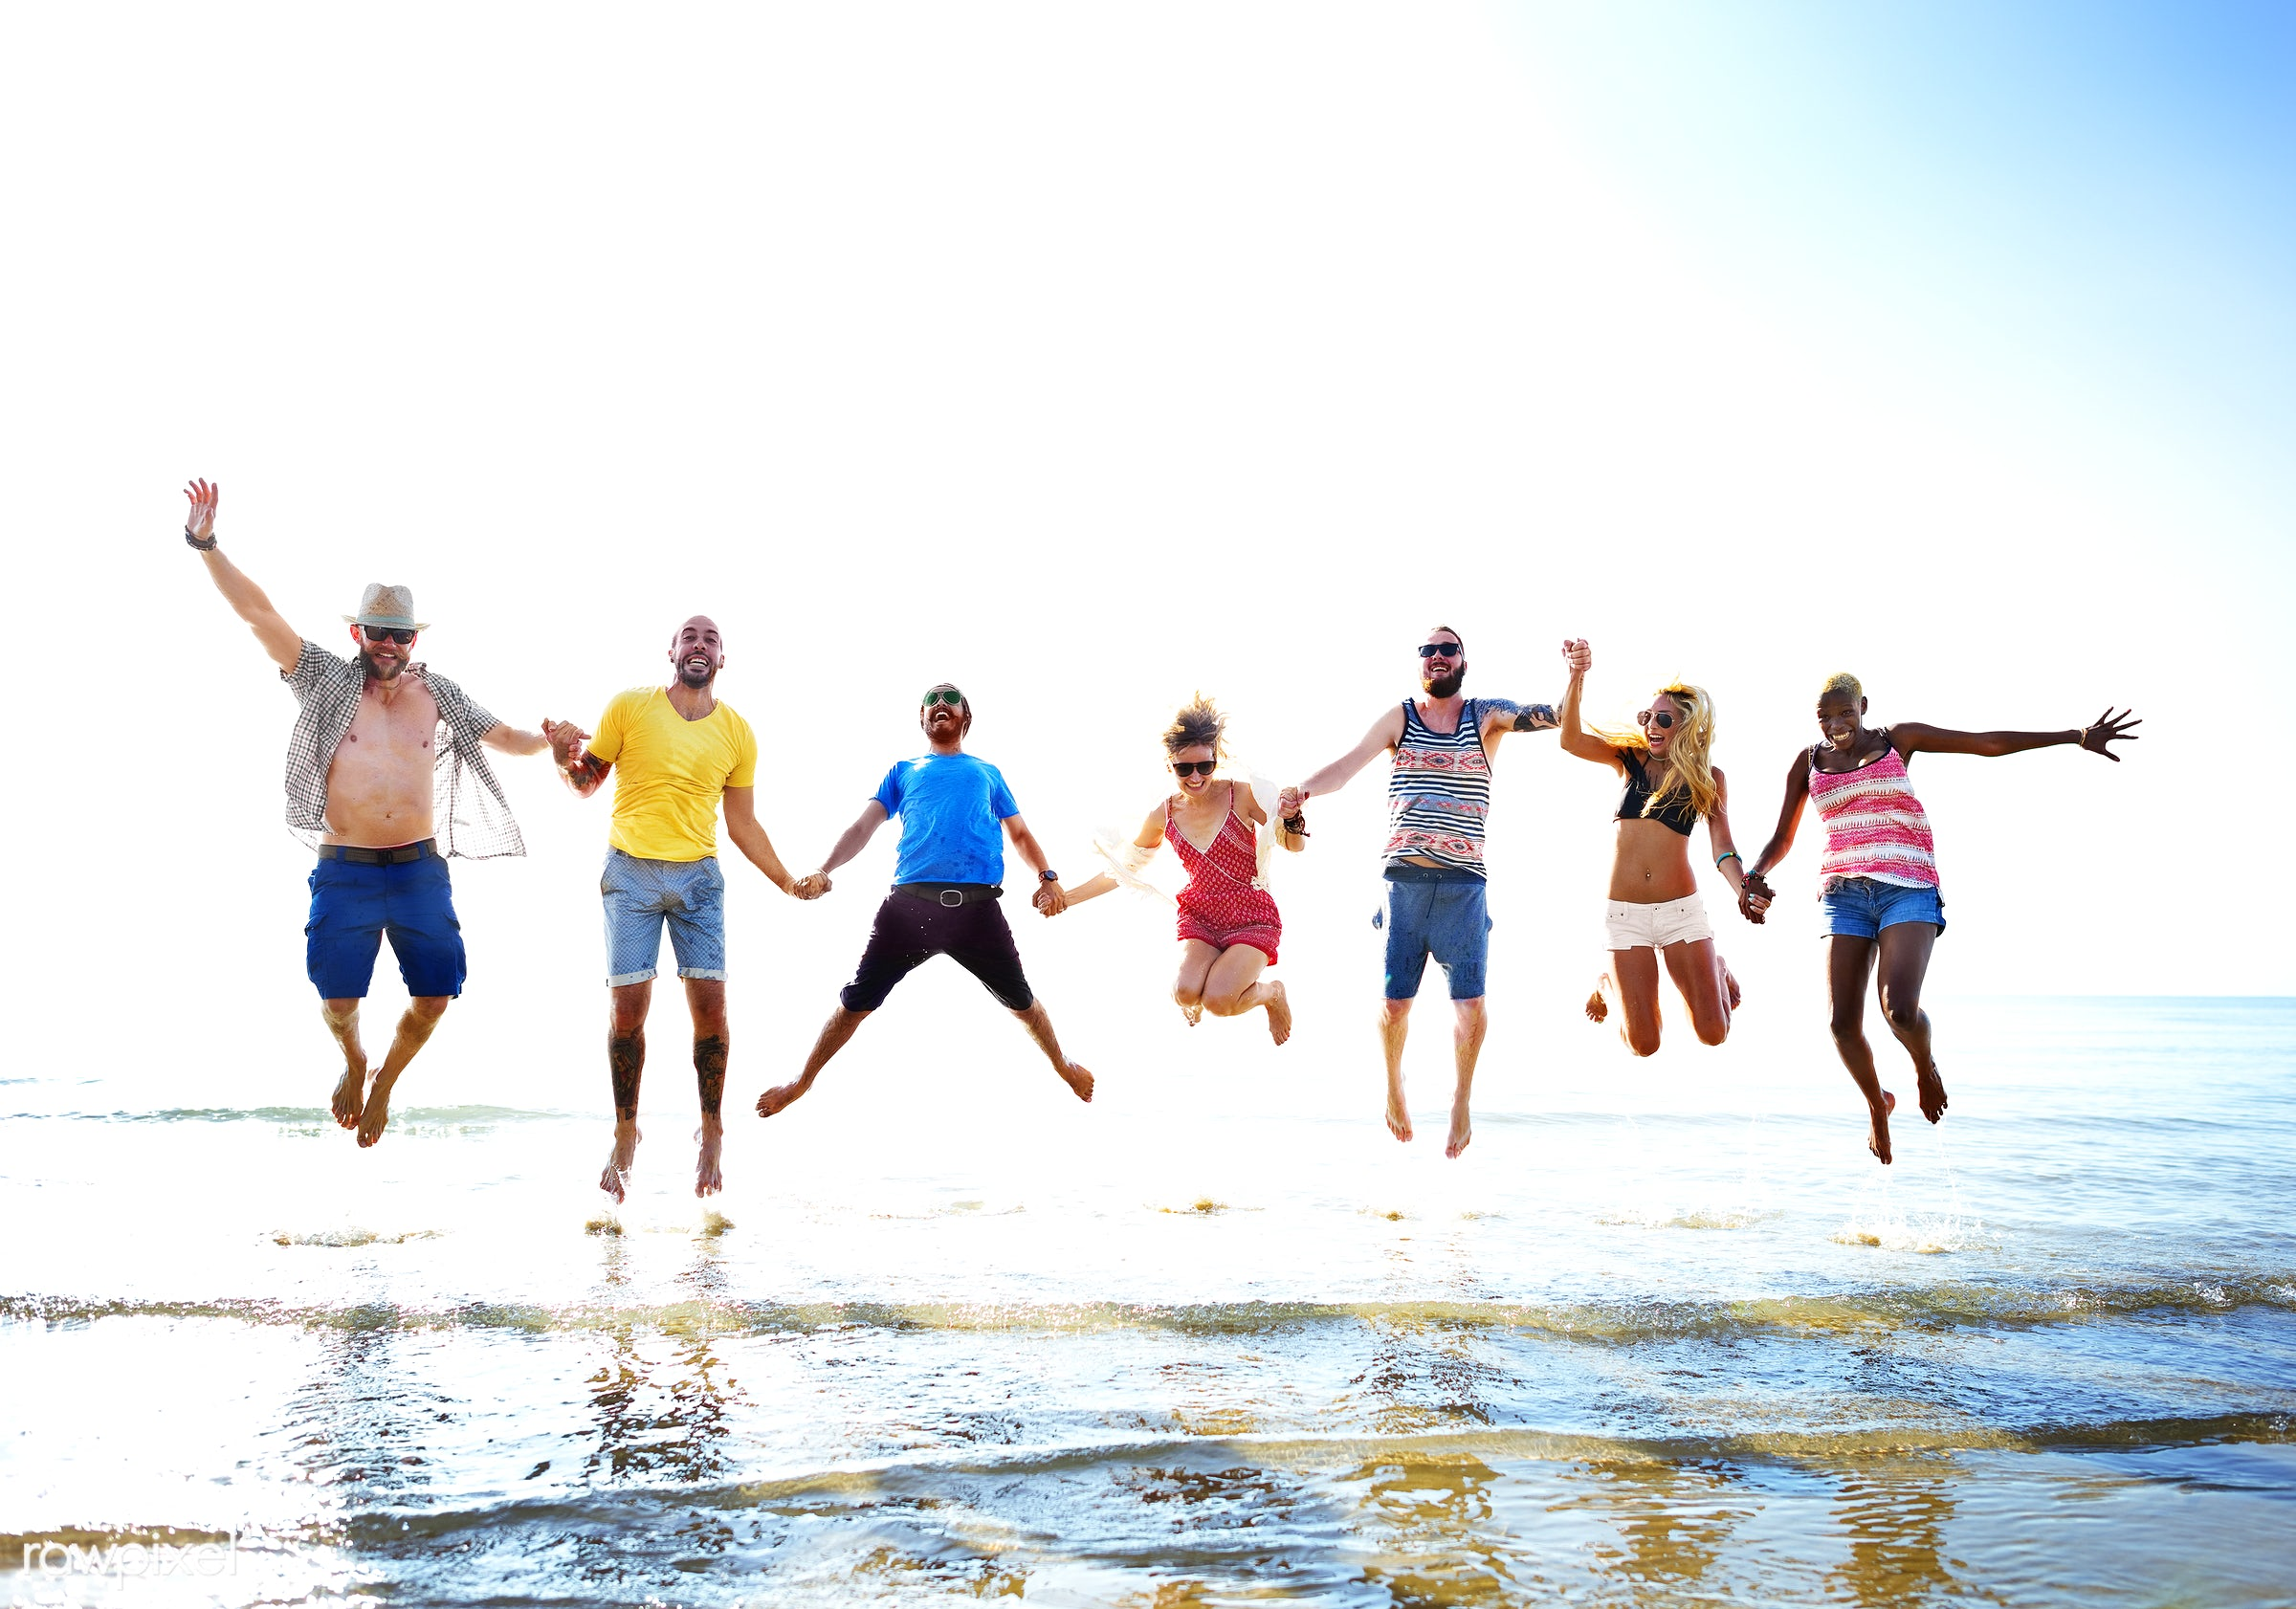 Friends playing in the water at the beach - happiness, fun, lifestyle, sea, beach, jump, diverse, excited, action, african...